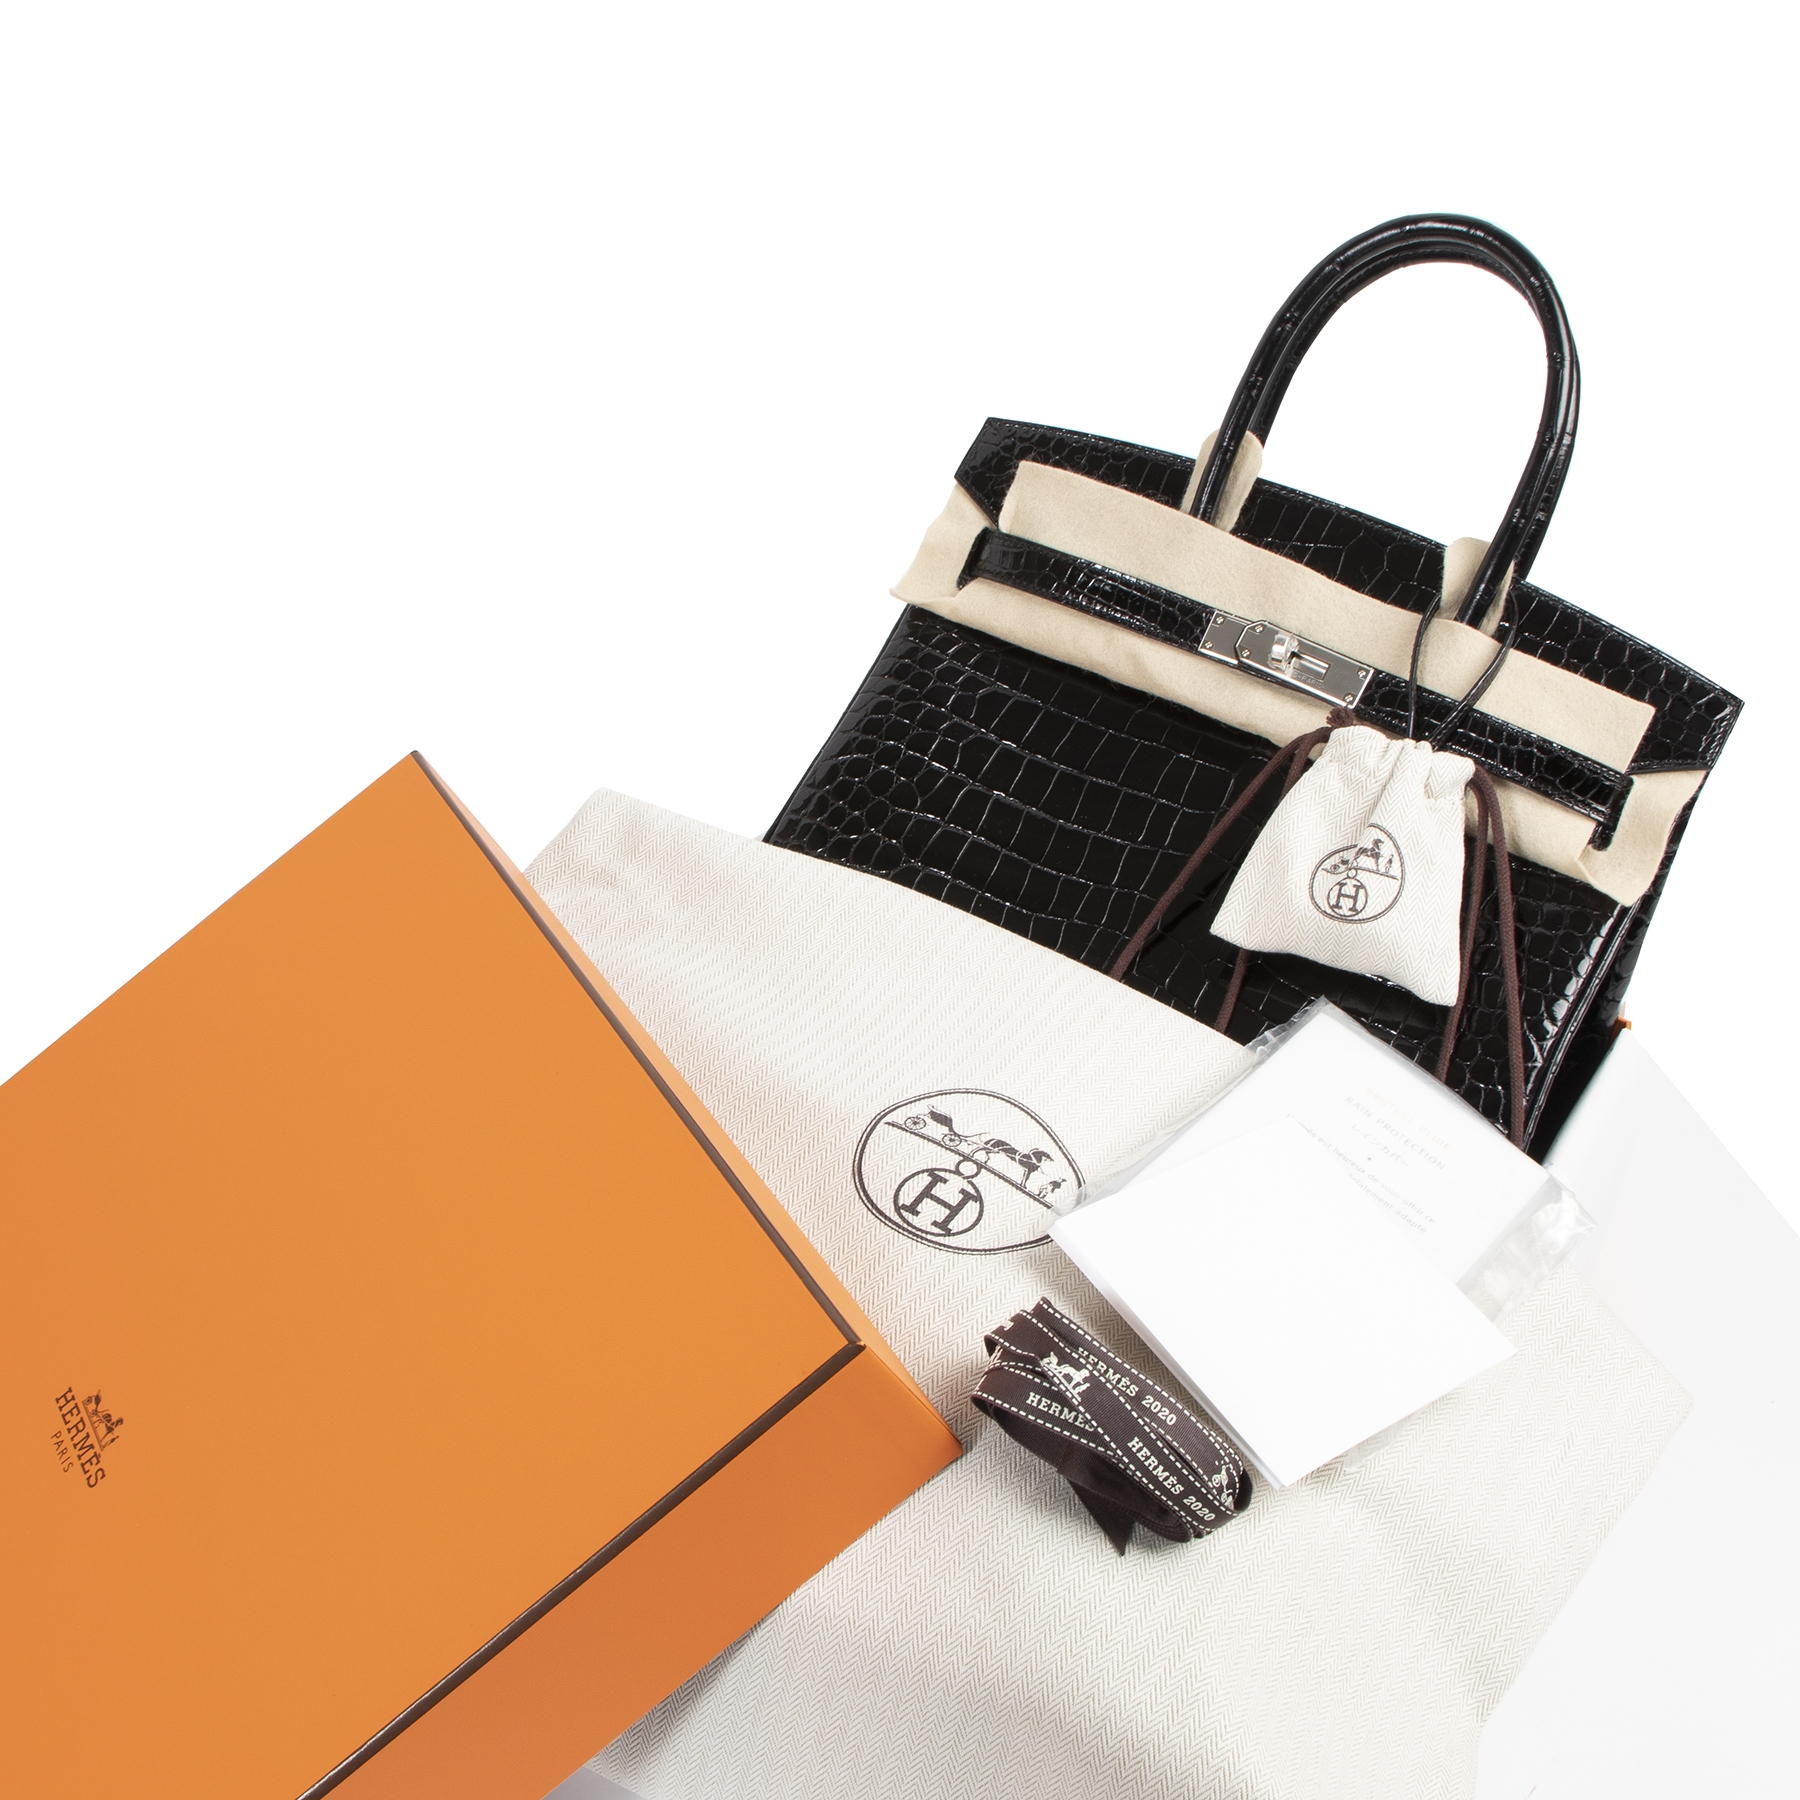 Hermes Birkin 30 Crocodile Porosus PHW at the right price online at Labellov